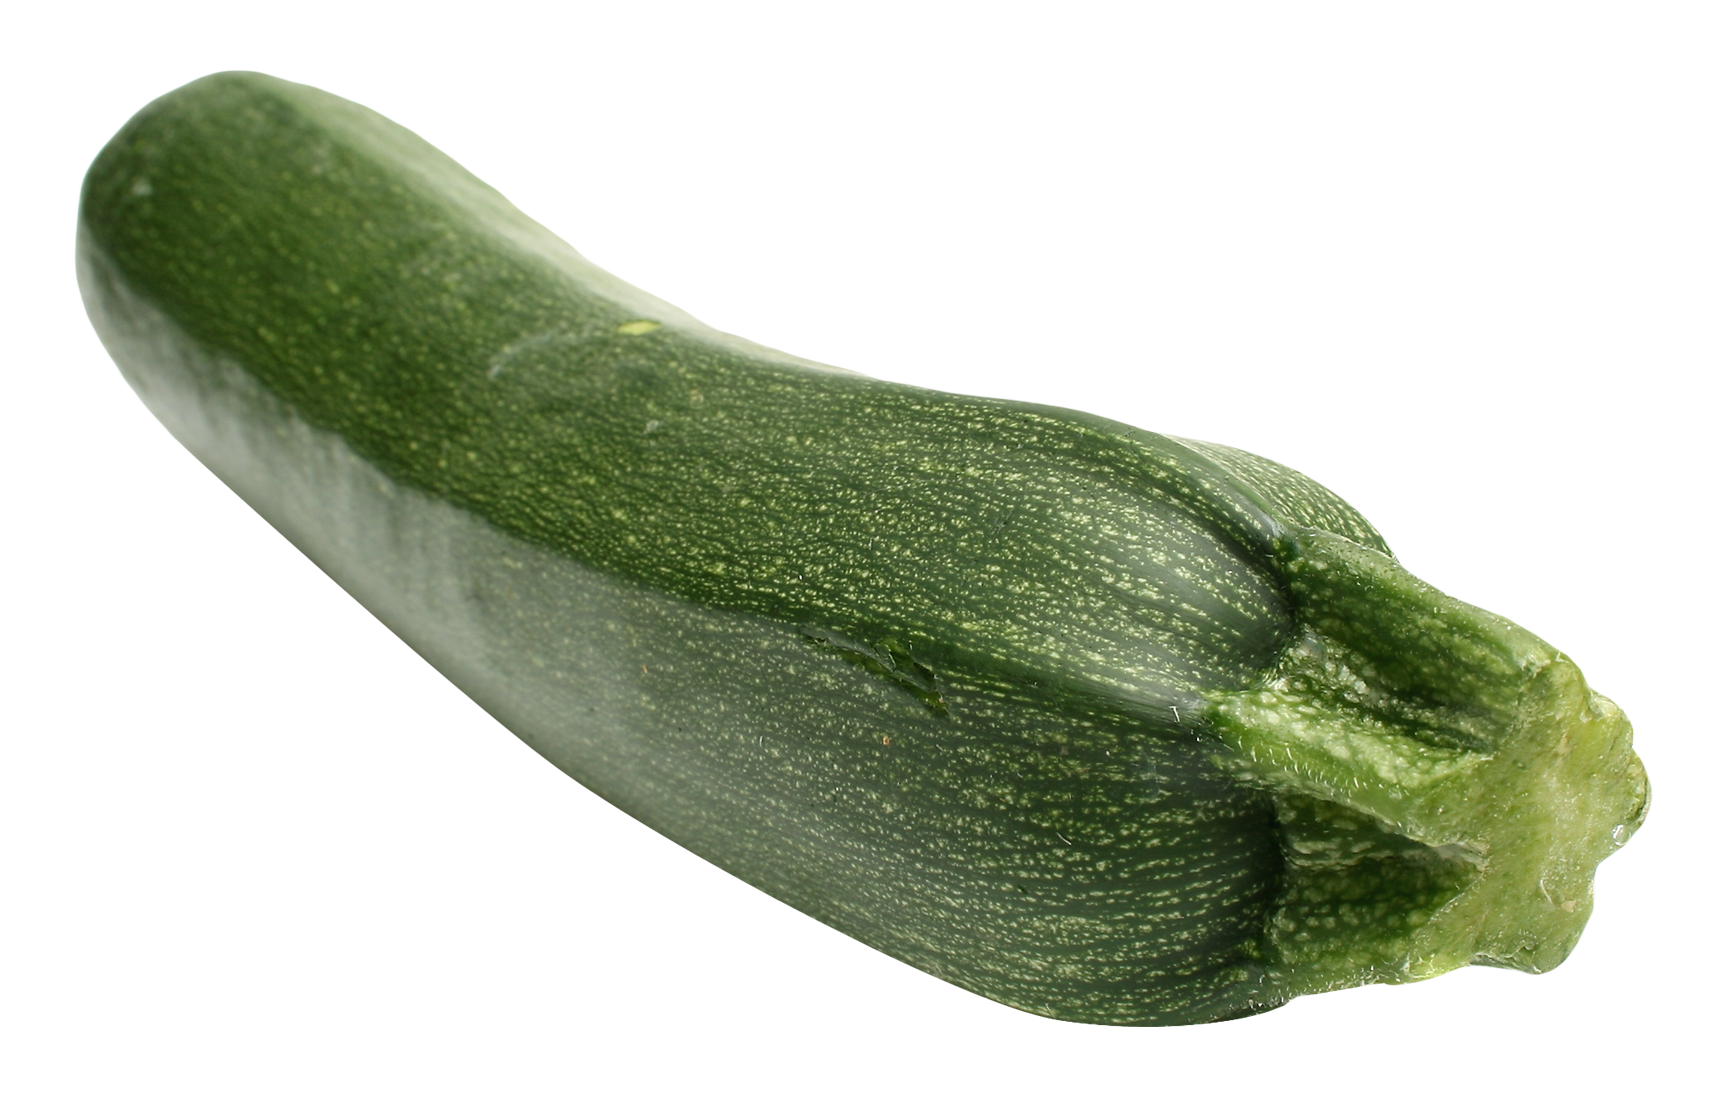 Png image purepng free. Zucchini clipart small